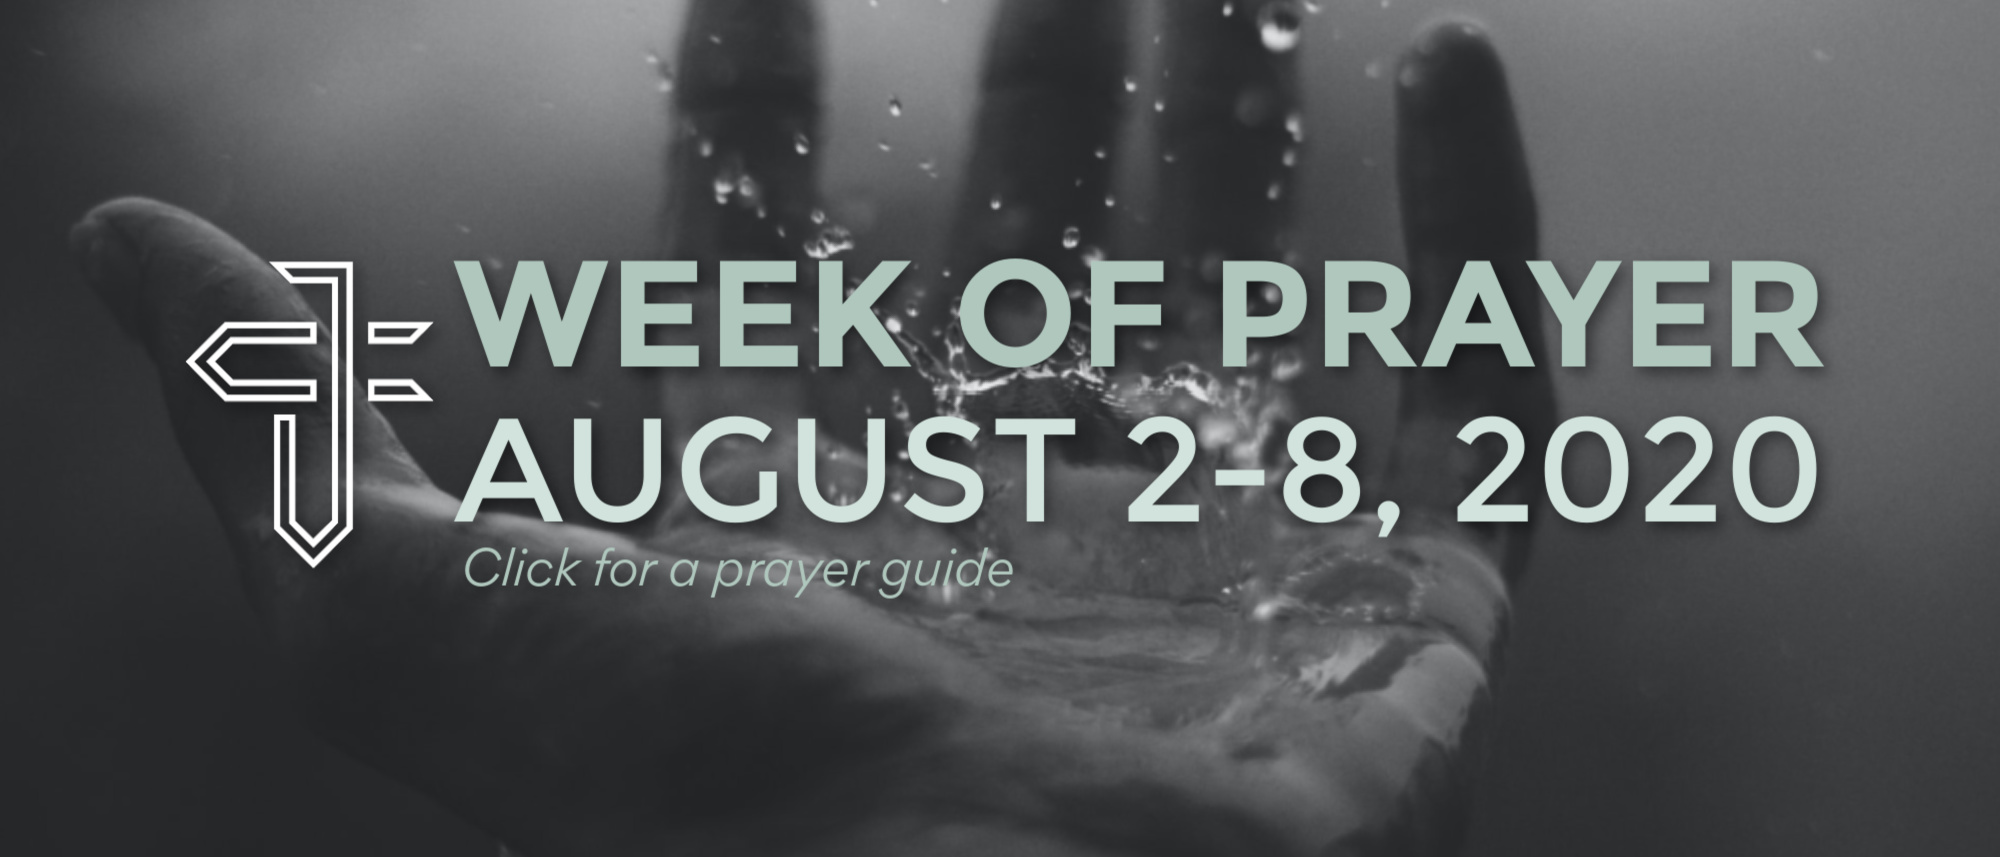 Join us as we set aside this week for intentional prayer at Journey Church of River Falls. Click for a prayer guide!